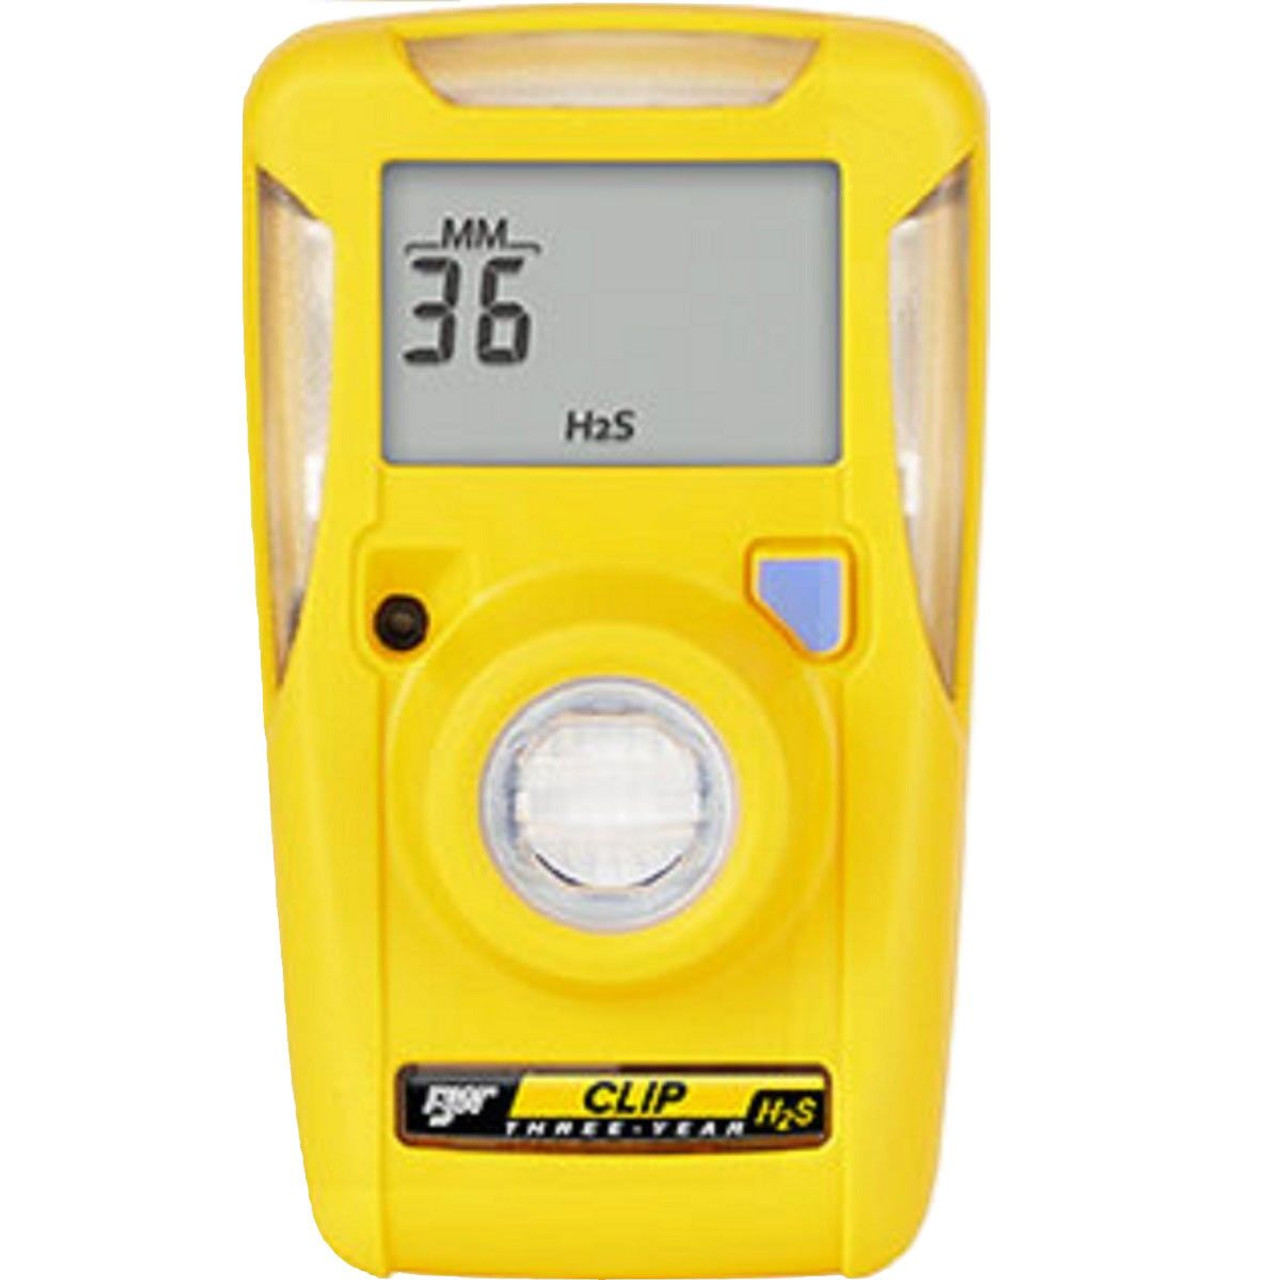 BW Clip H2S, 3 year Single Gas Detector